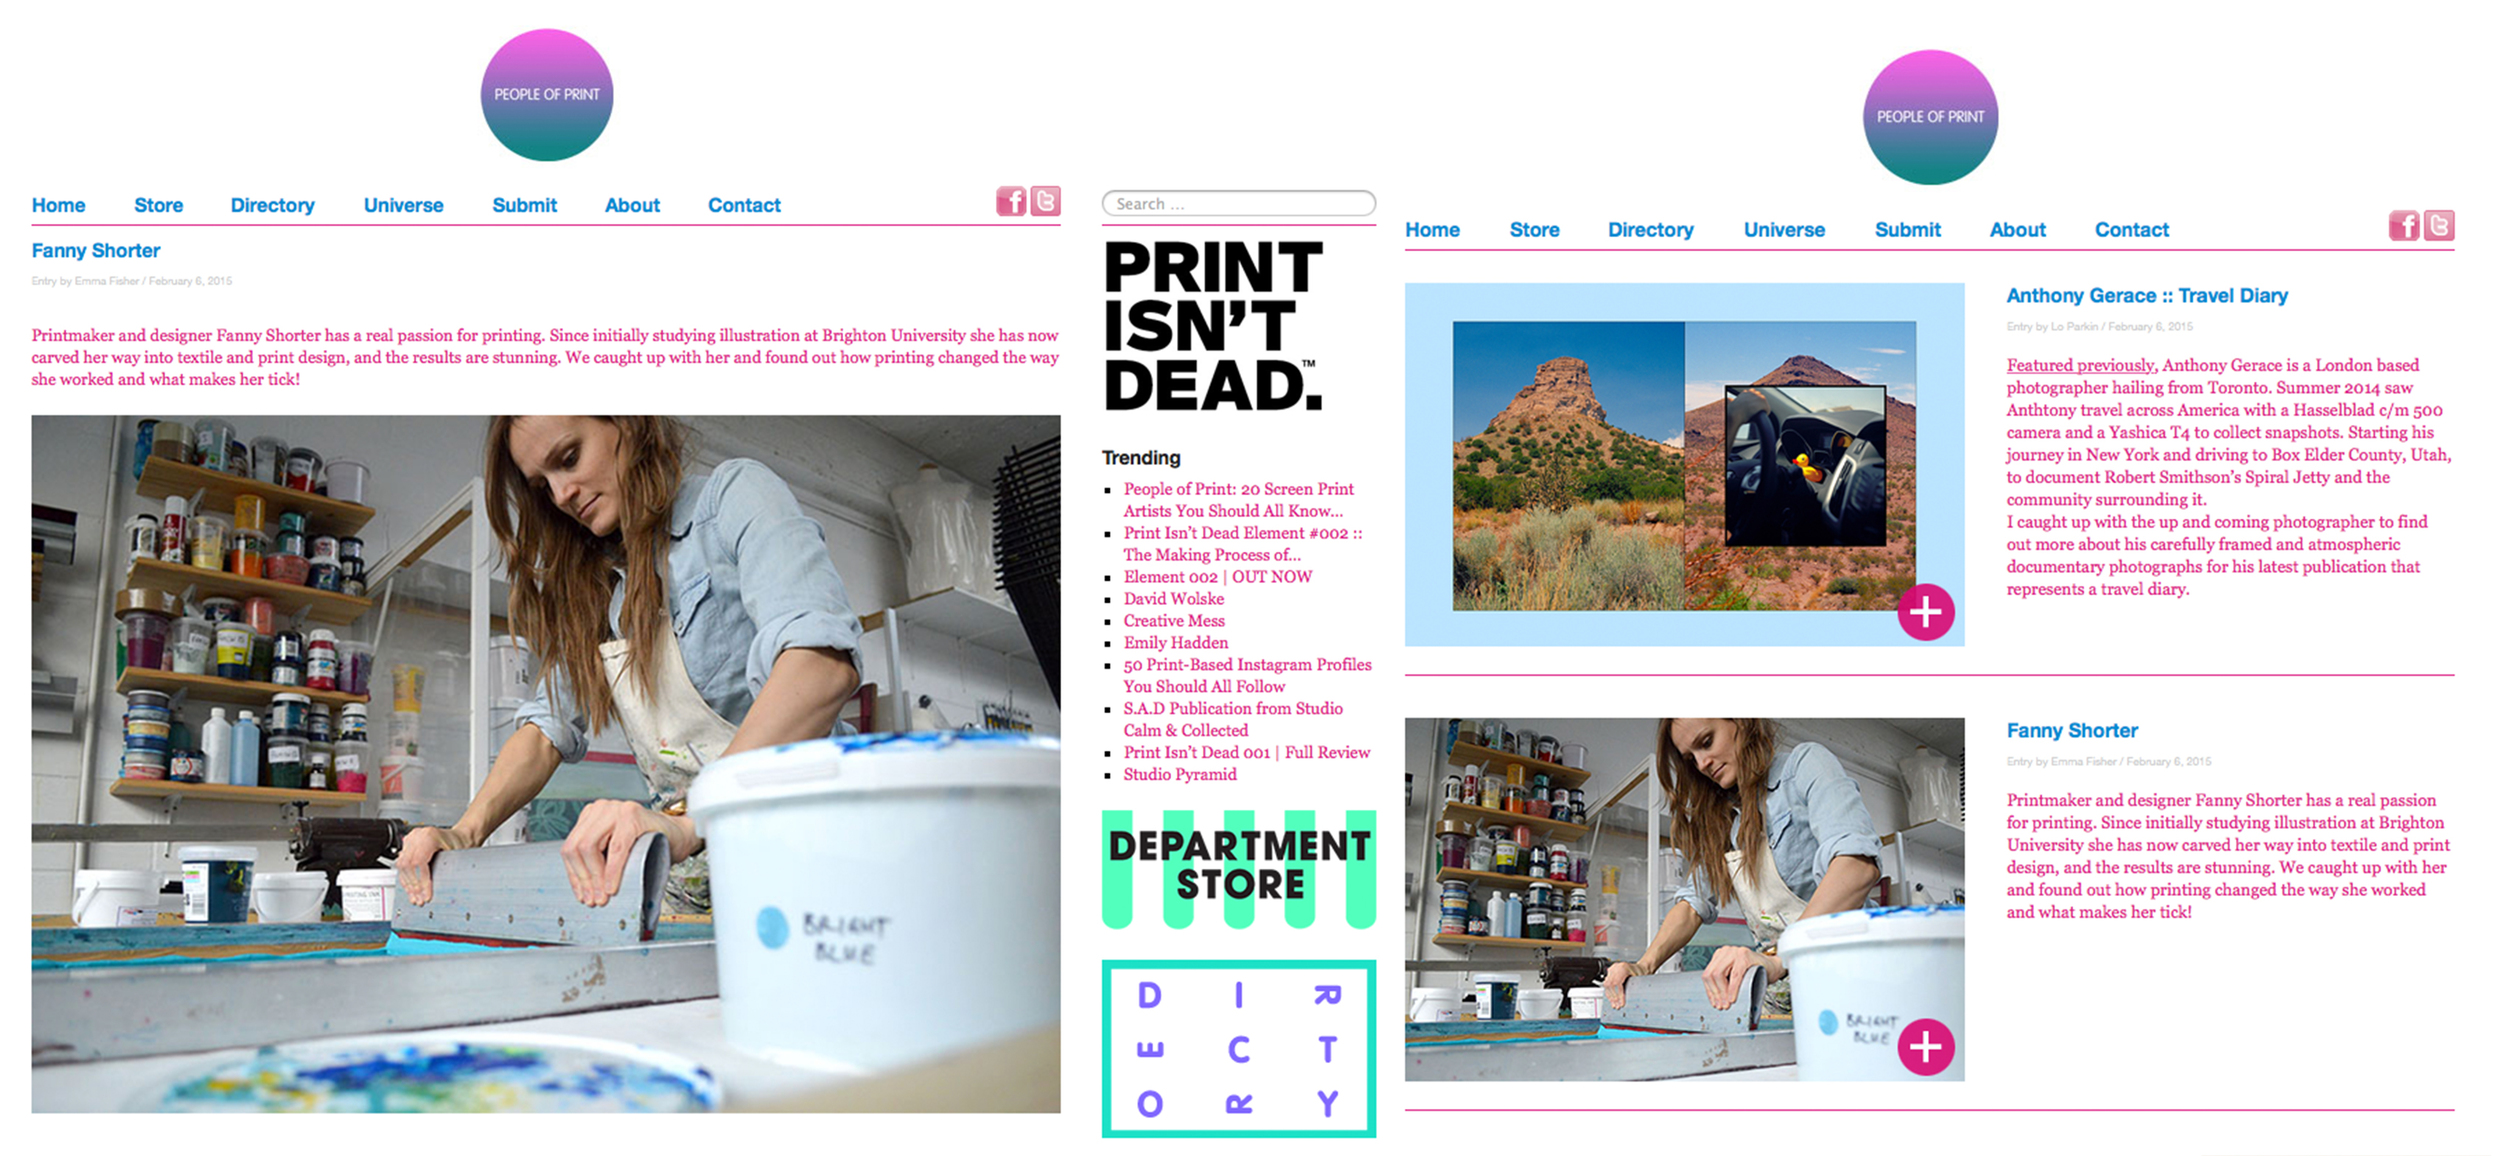 print isn't dead fanny shorter press 2015 screen printing people of print fabrics cushions interiors interior artist illustration design interview